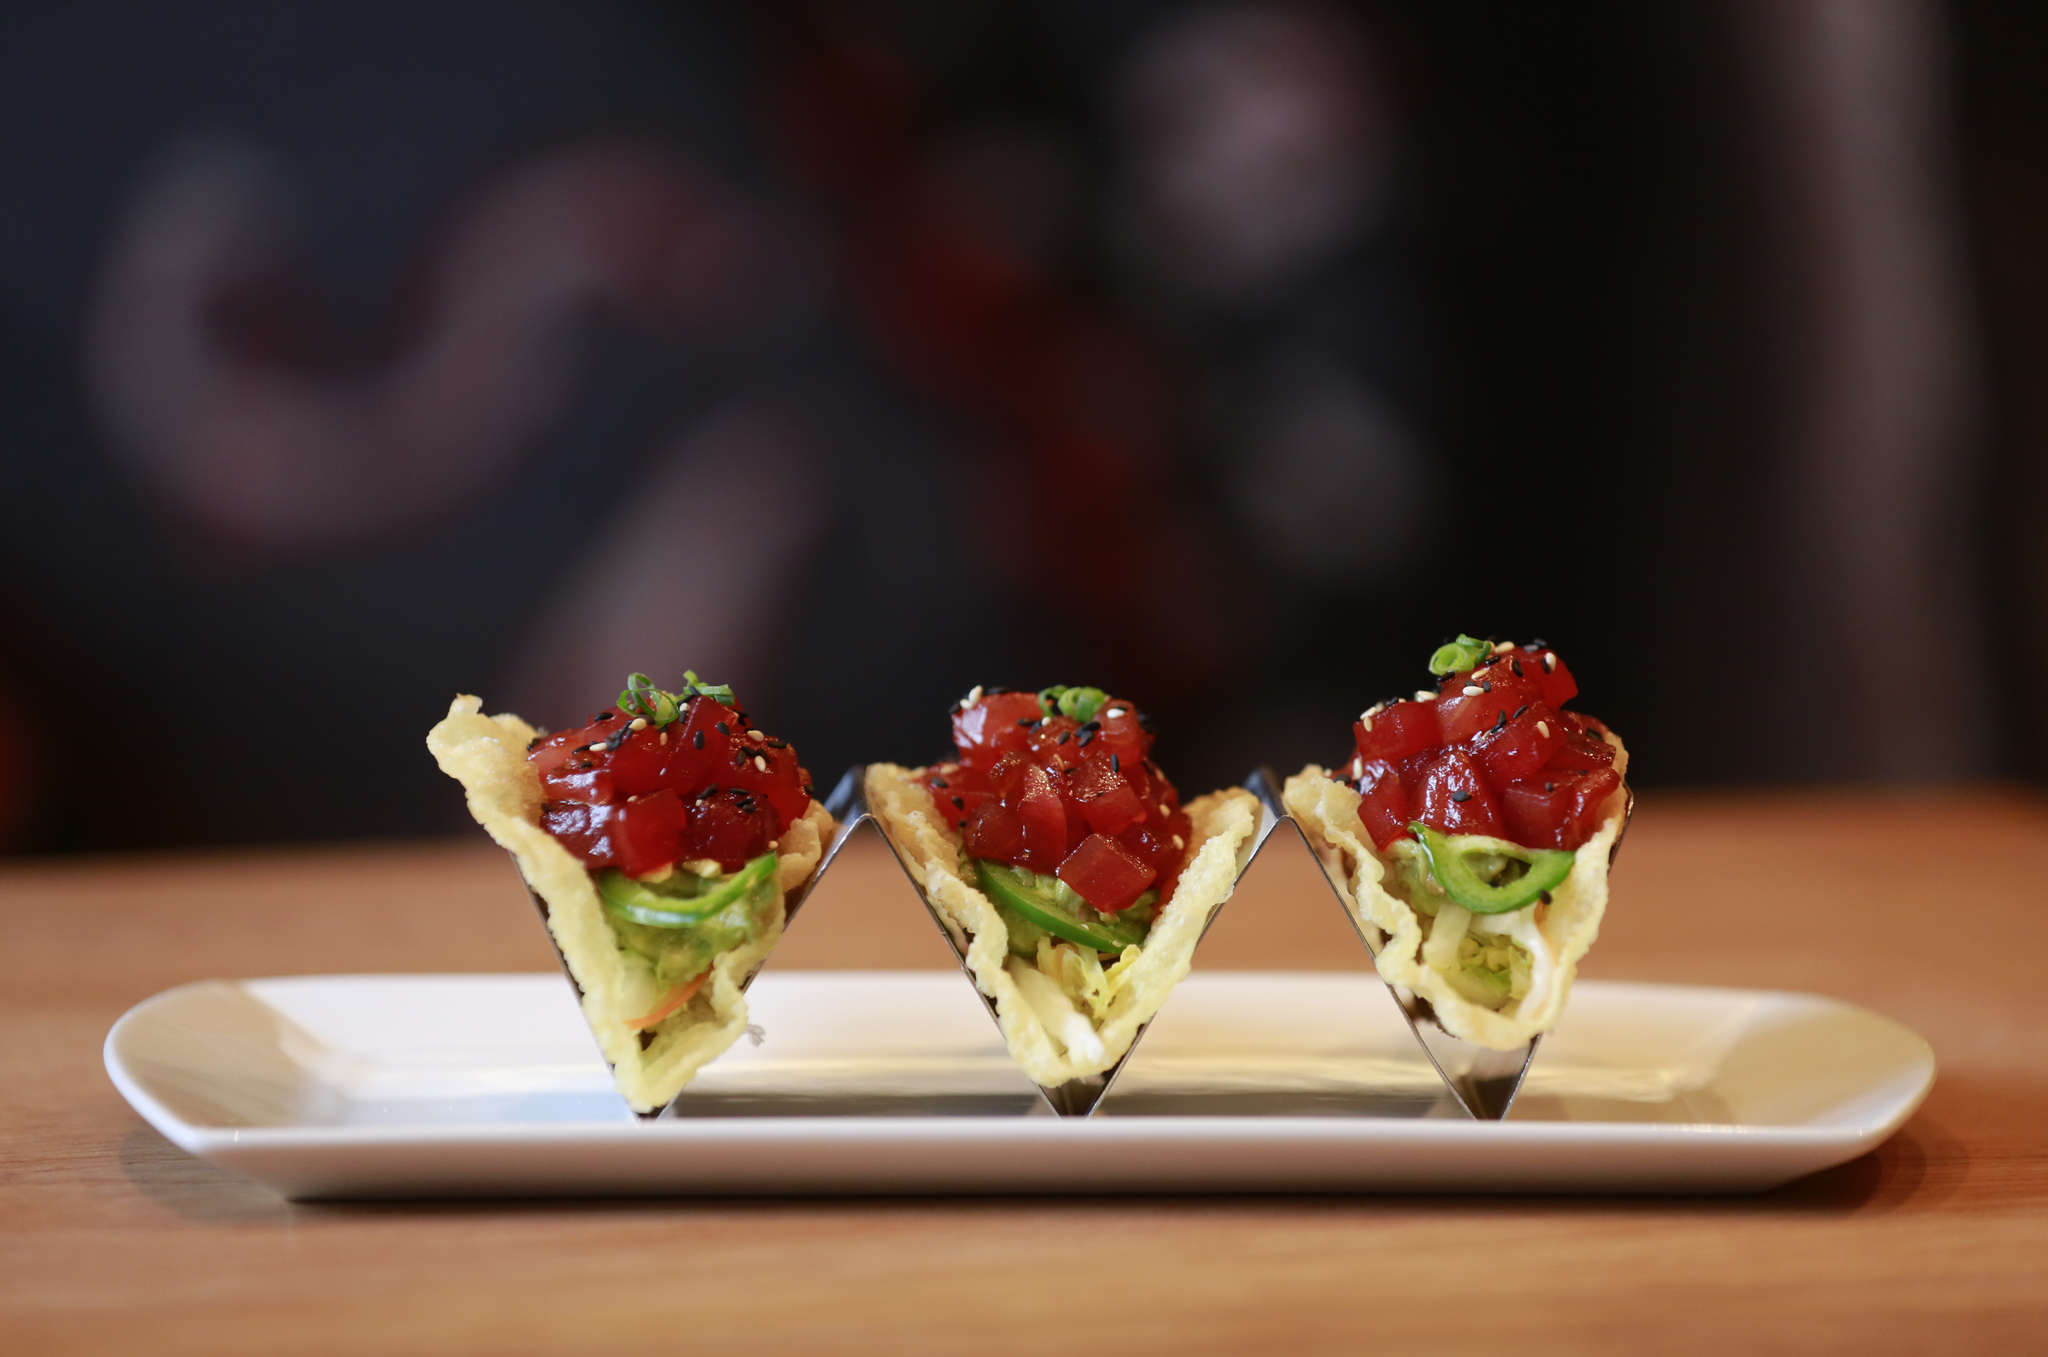 Crispy tacos at SUGA, their shells made from fried wonton skins, are topped with diced sushi tuna.